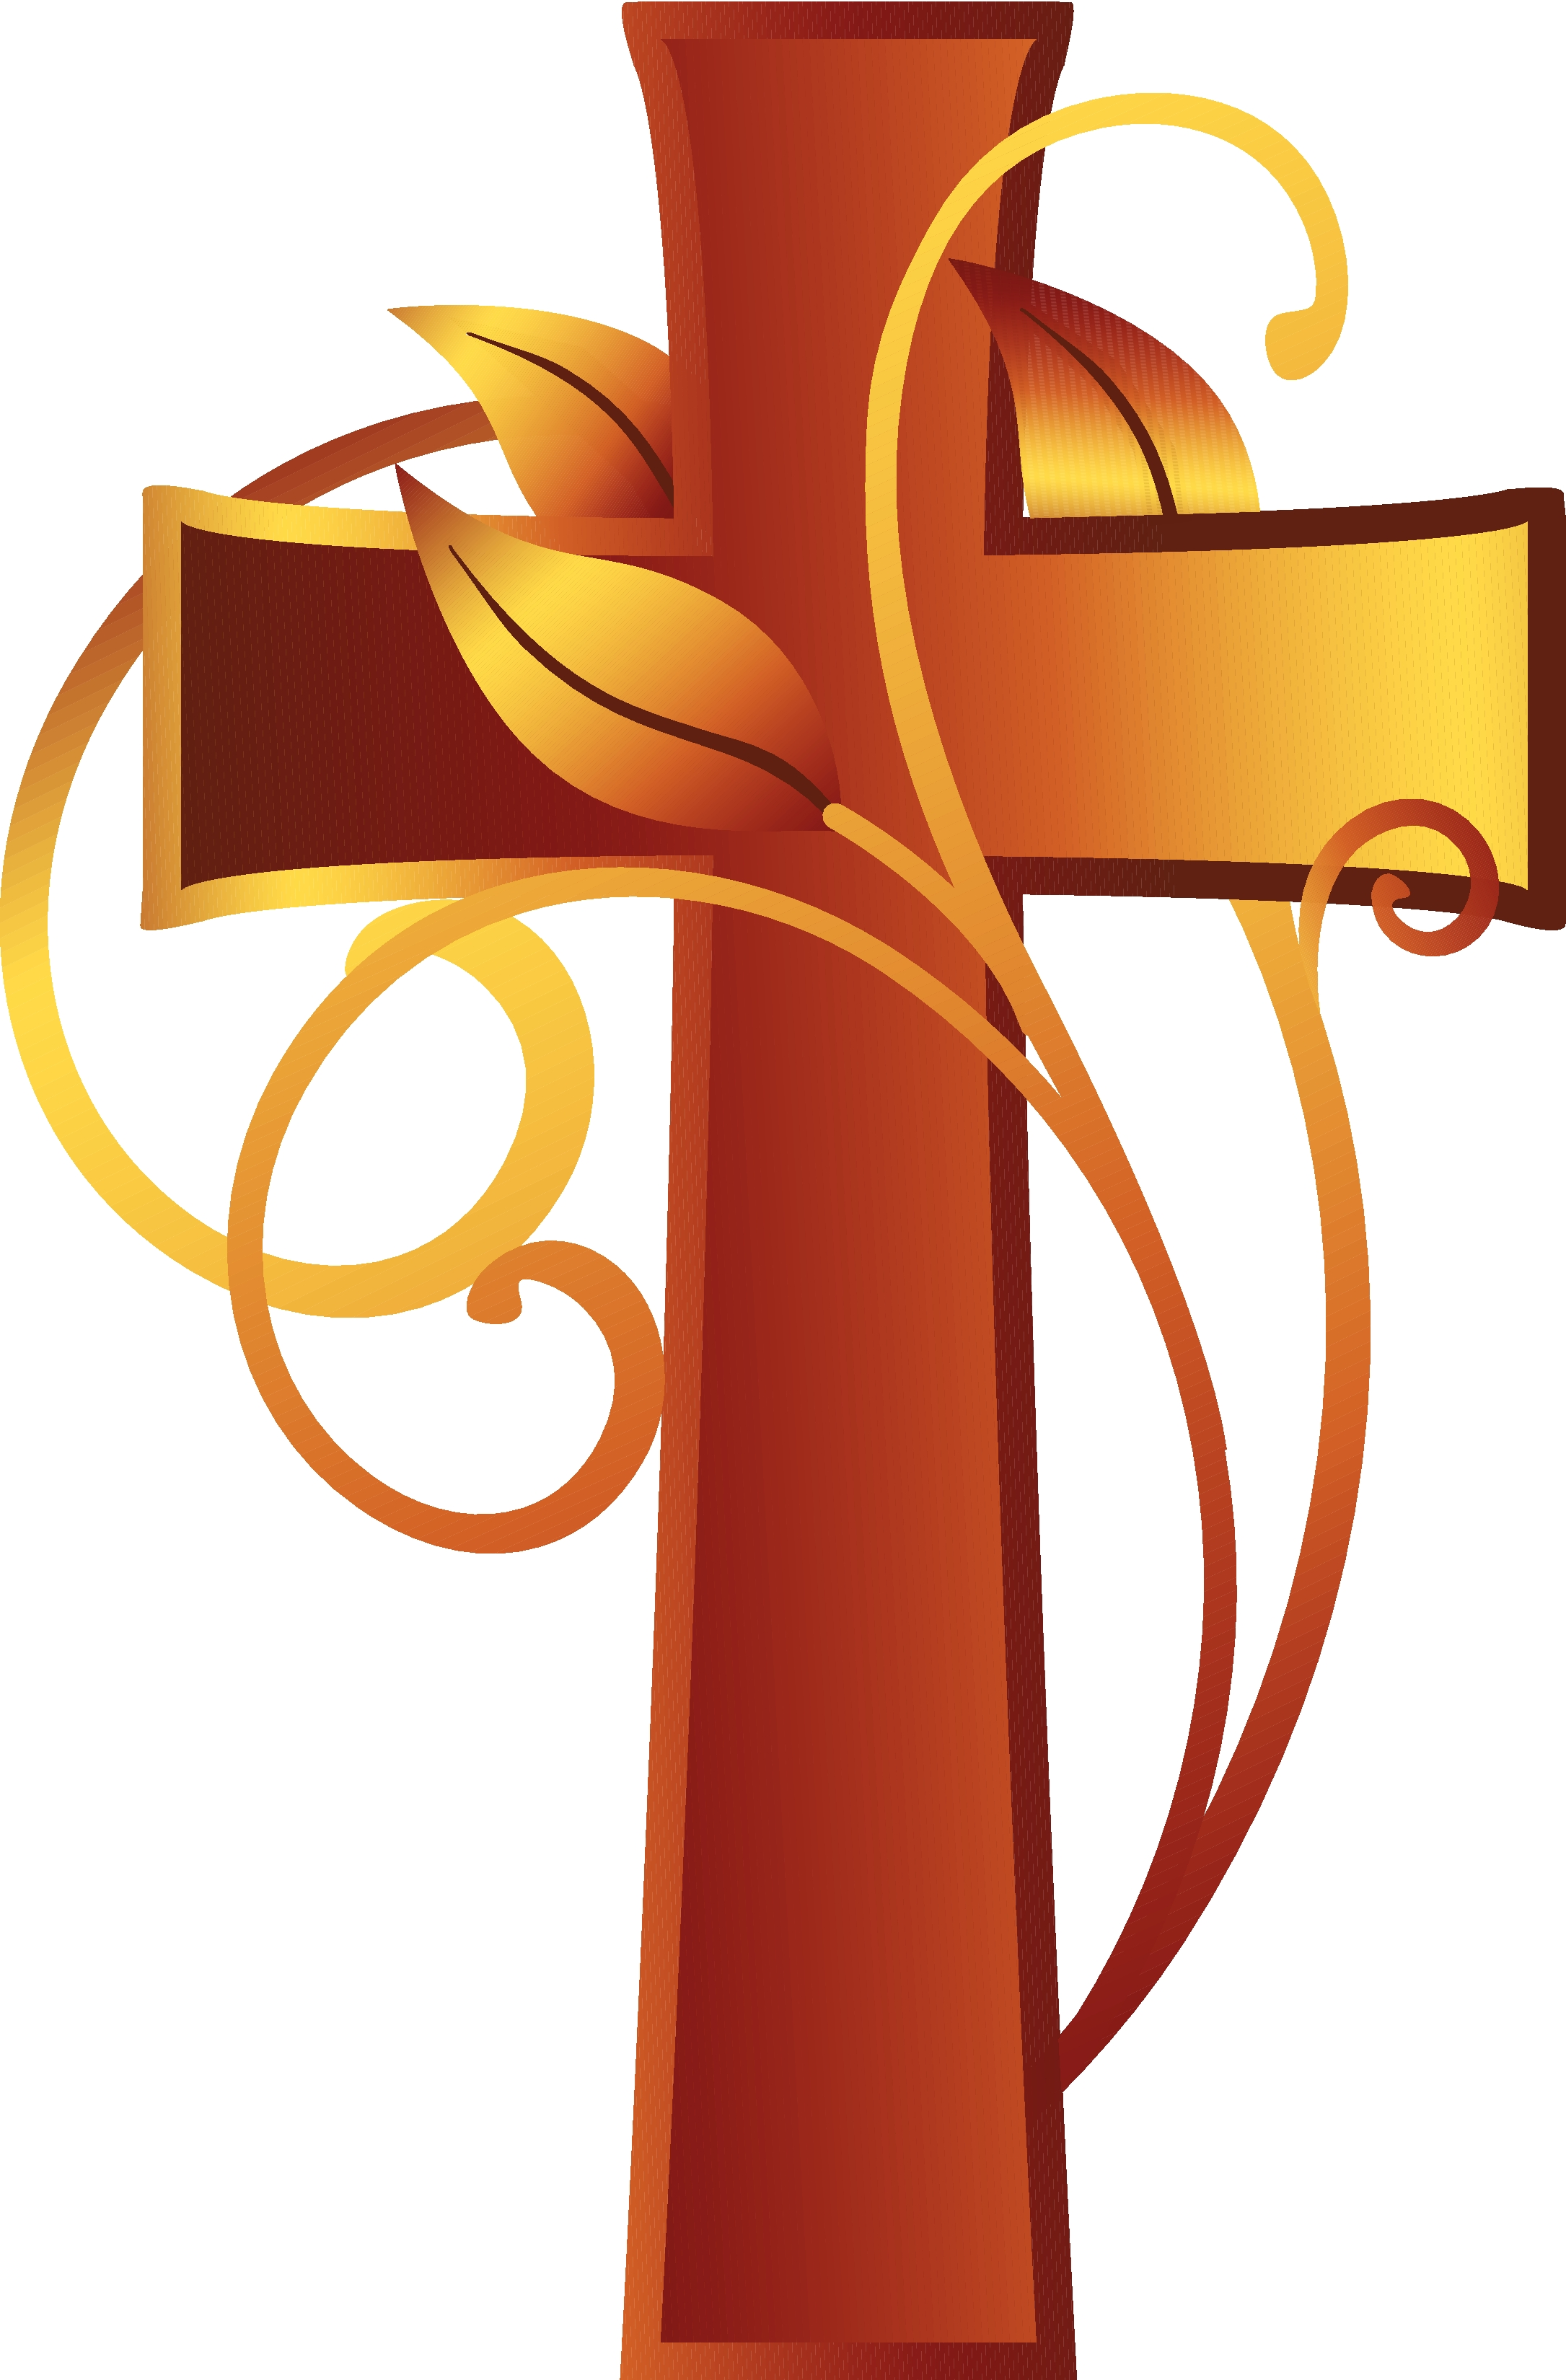 Religious religion public domain. Free christian clipart and images